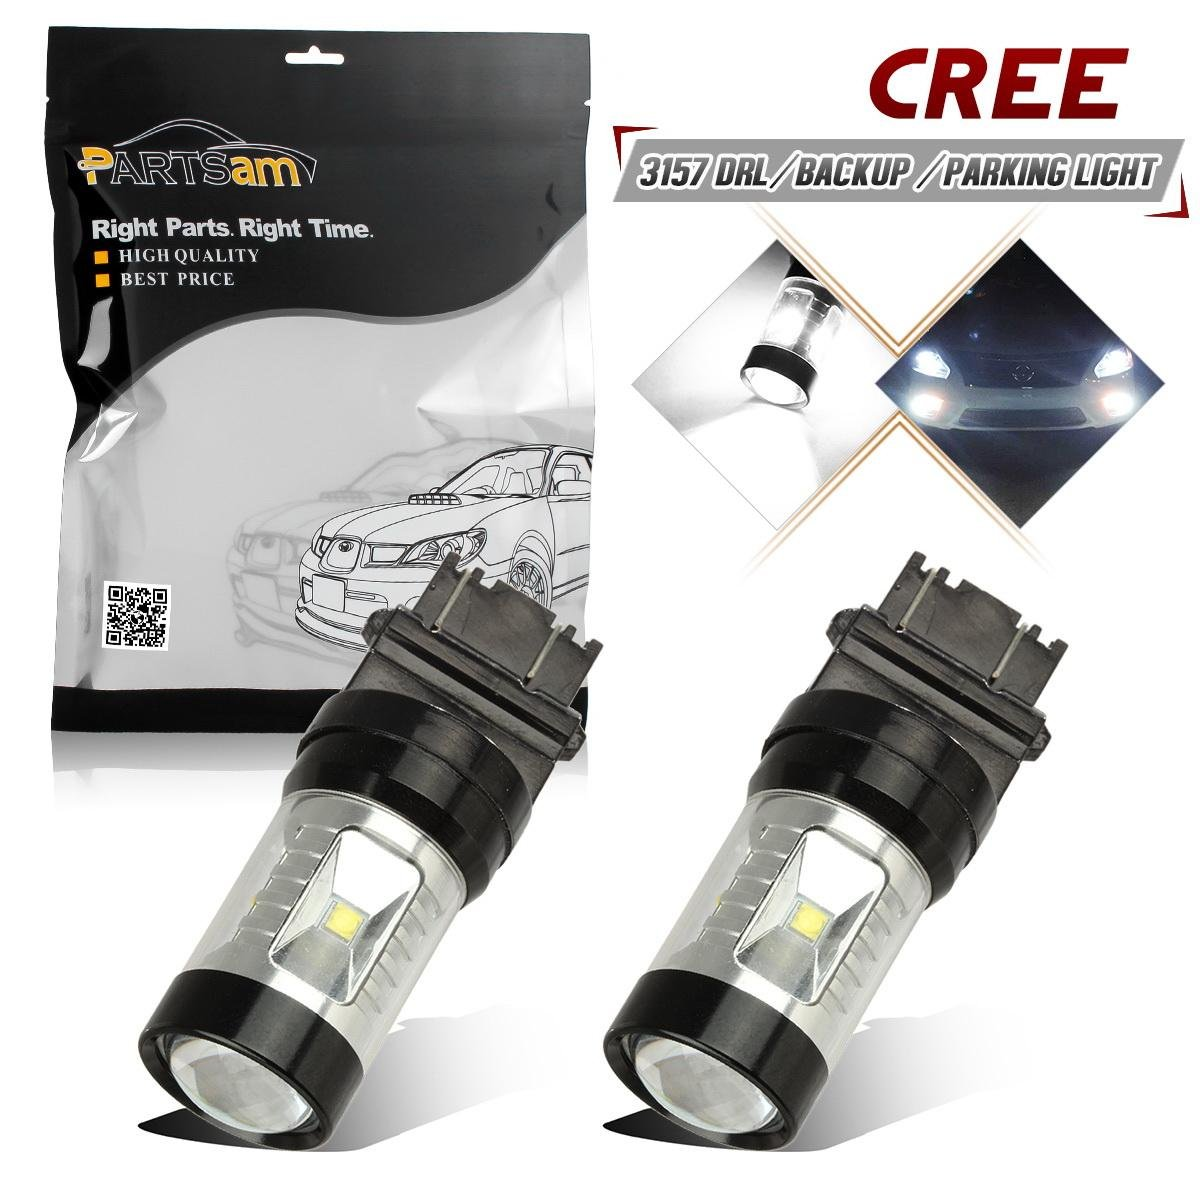 Partsam Car H8 H11 Blue 6-Cree-XB-D CREE LED DRL Fog Light Bulbs - 950 Lm per bulb - Plug-n-Play (Pack of 2)